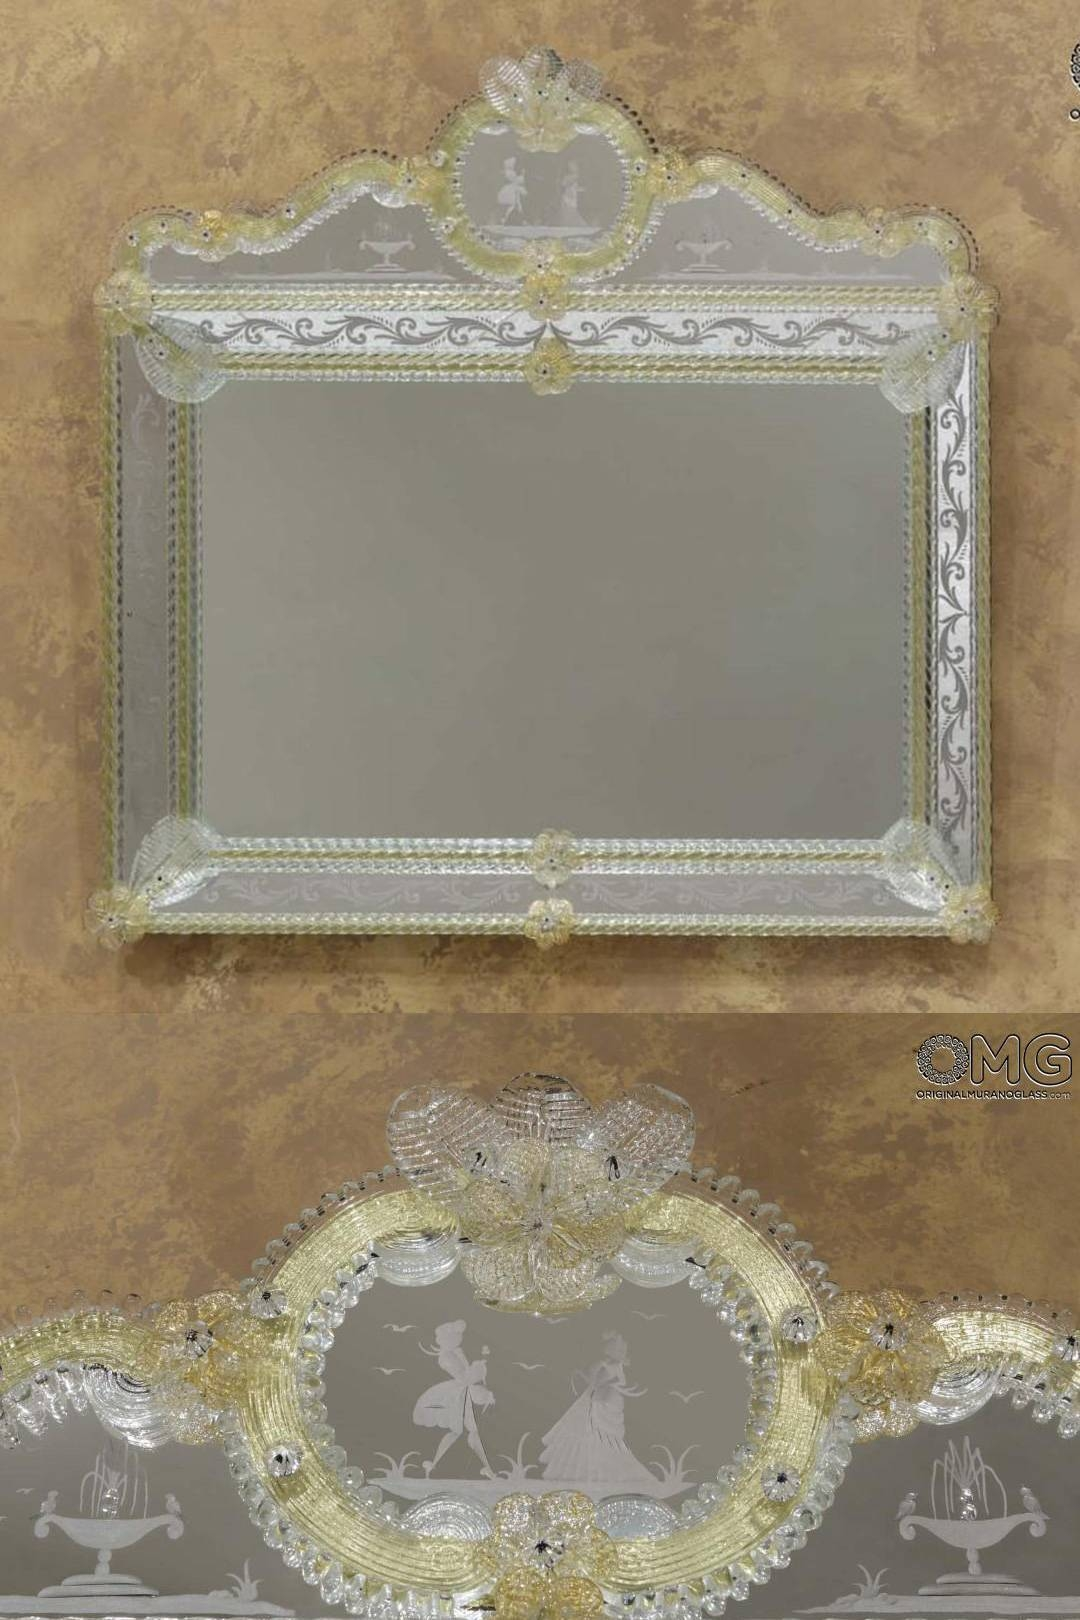 Venetian Mirrors - Engraved And With Murano Glass : Lovers - Wall regarding Gold Venetian Mirrors (Image 22 of 25)